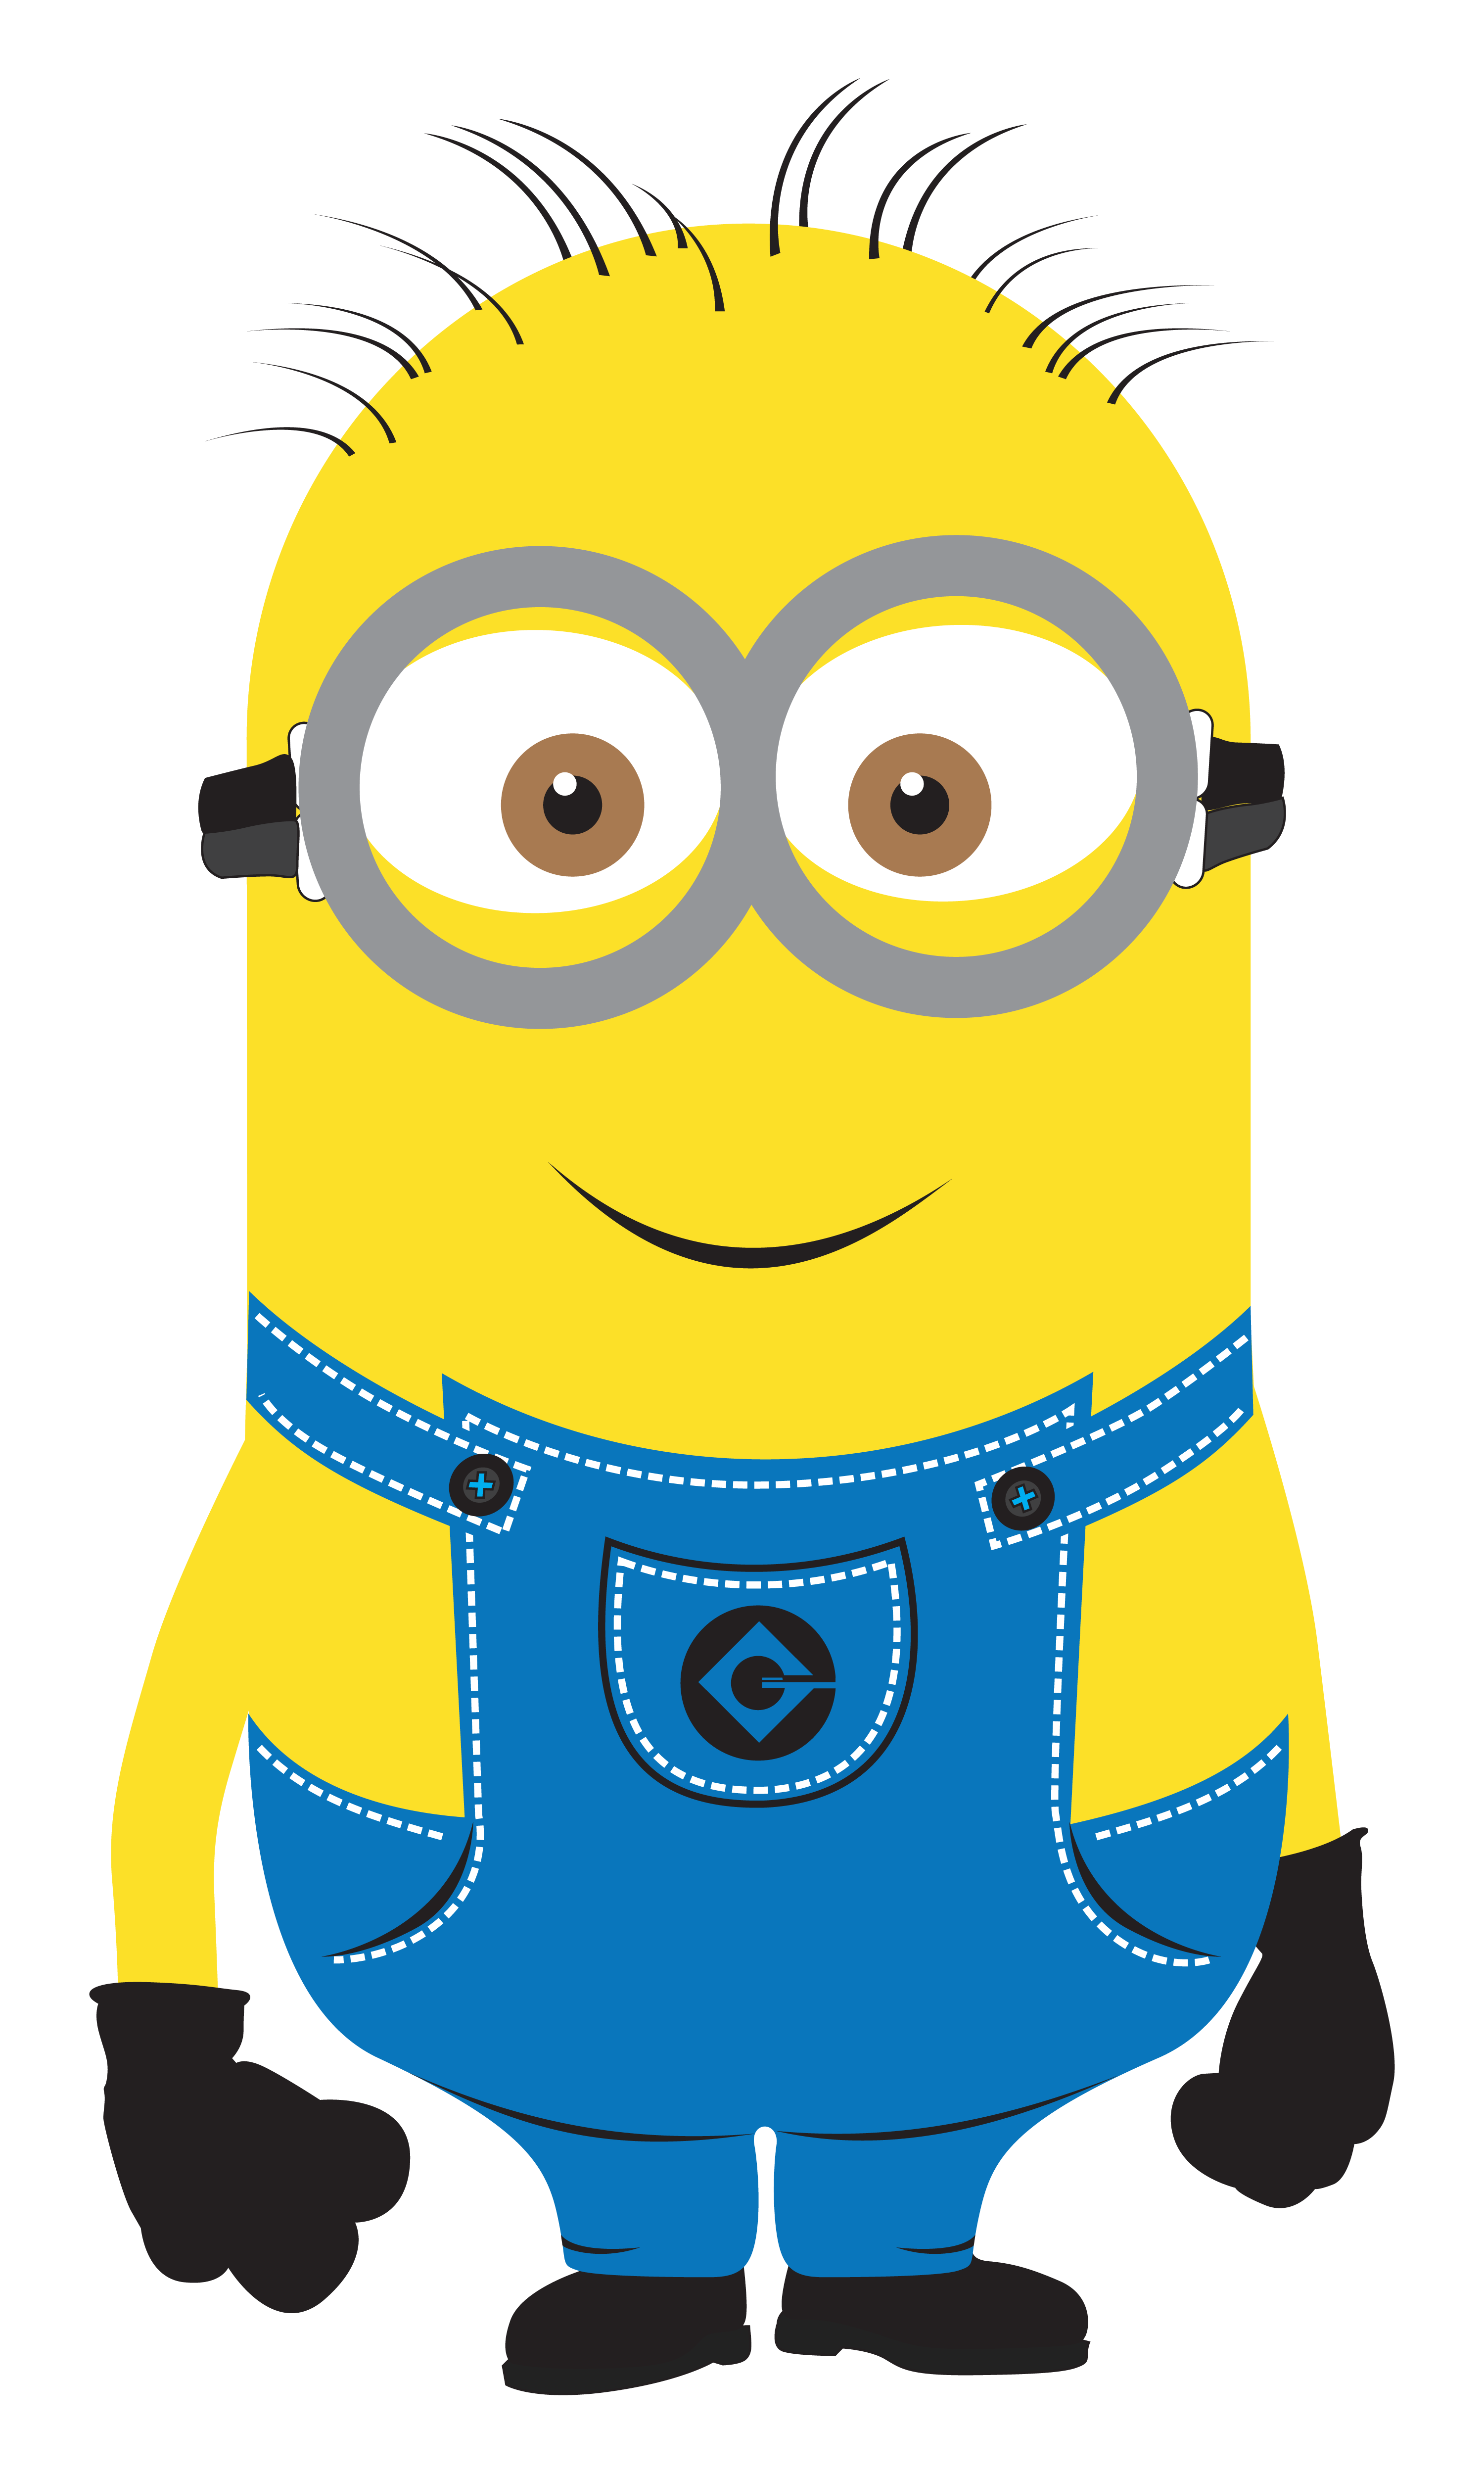 3000x5000 Despicable Me 2 Minions Vector (Ai, Eps, Cdr) Amp High Res Pngs What